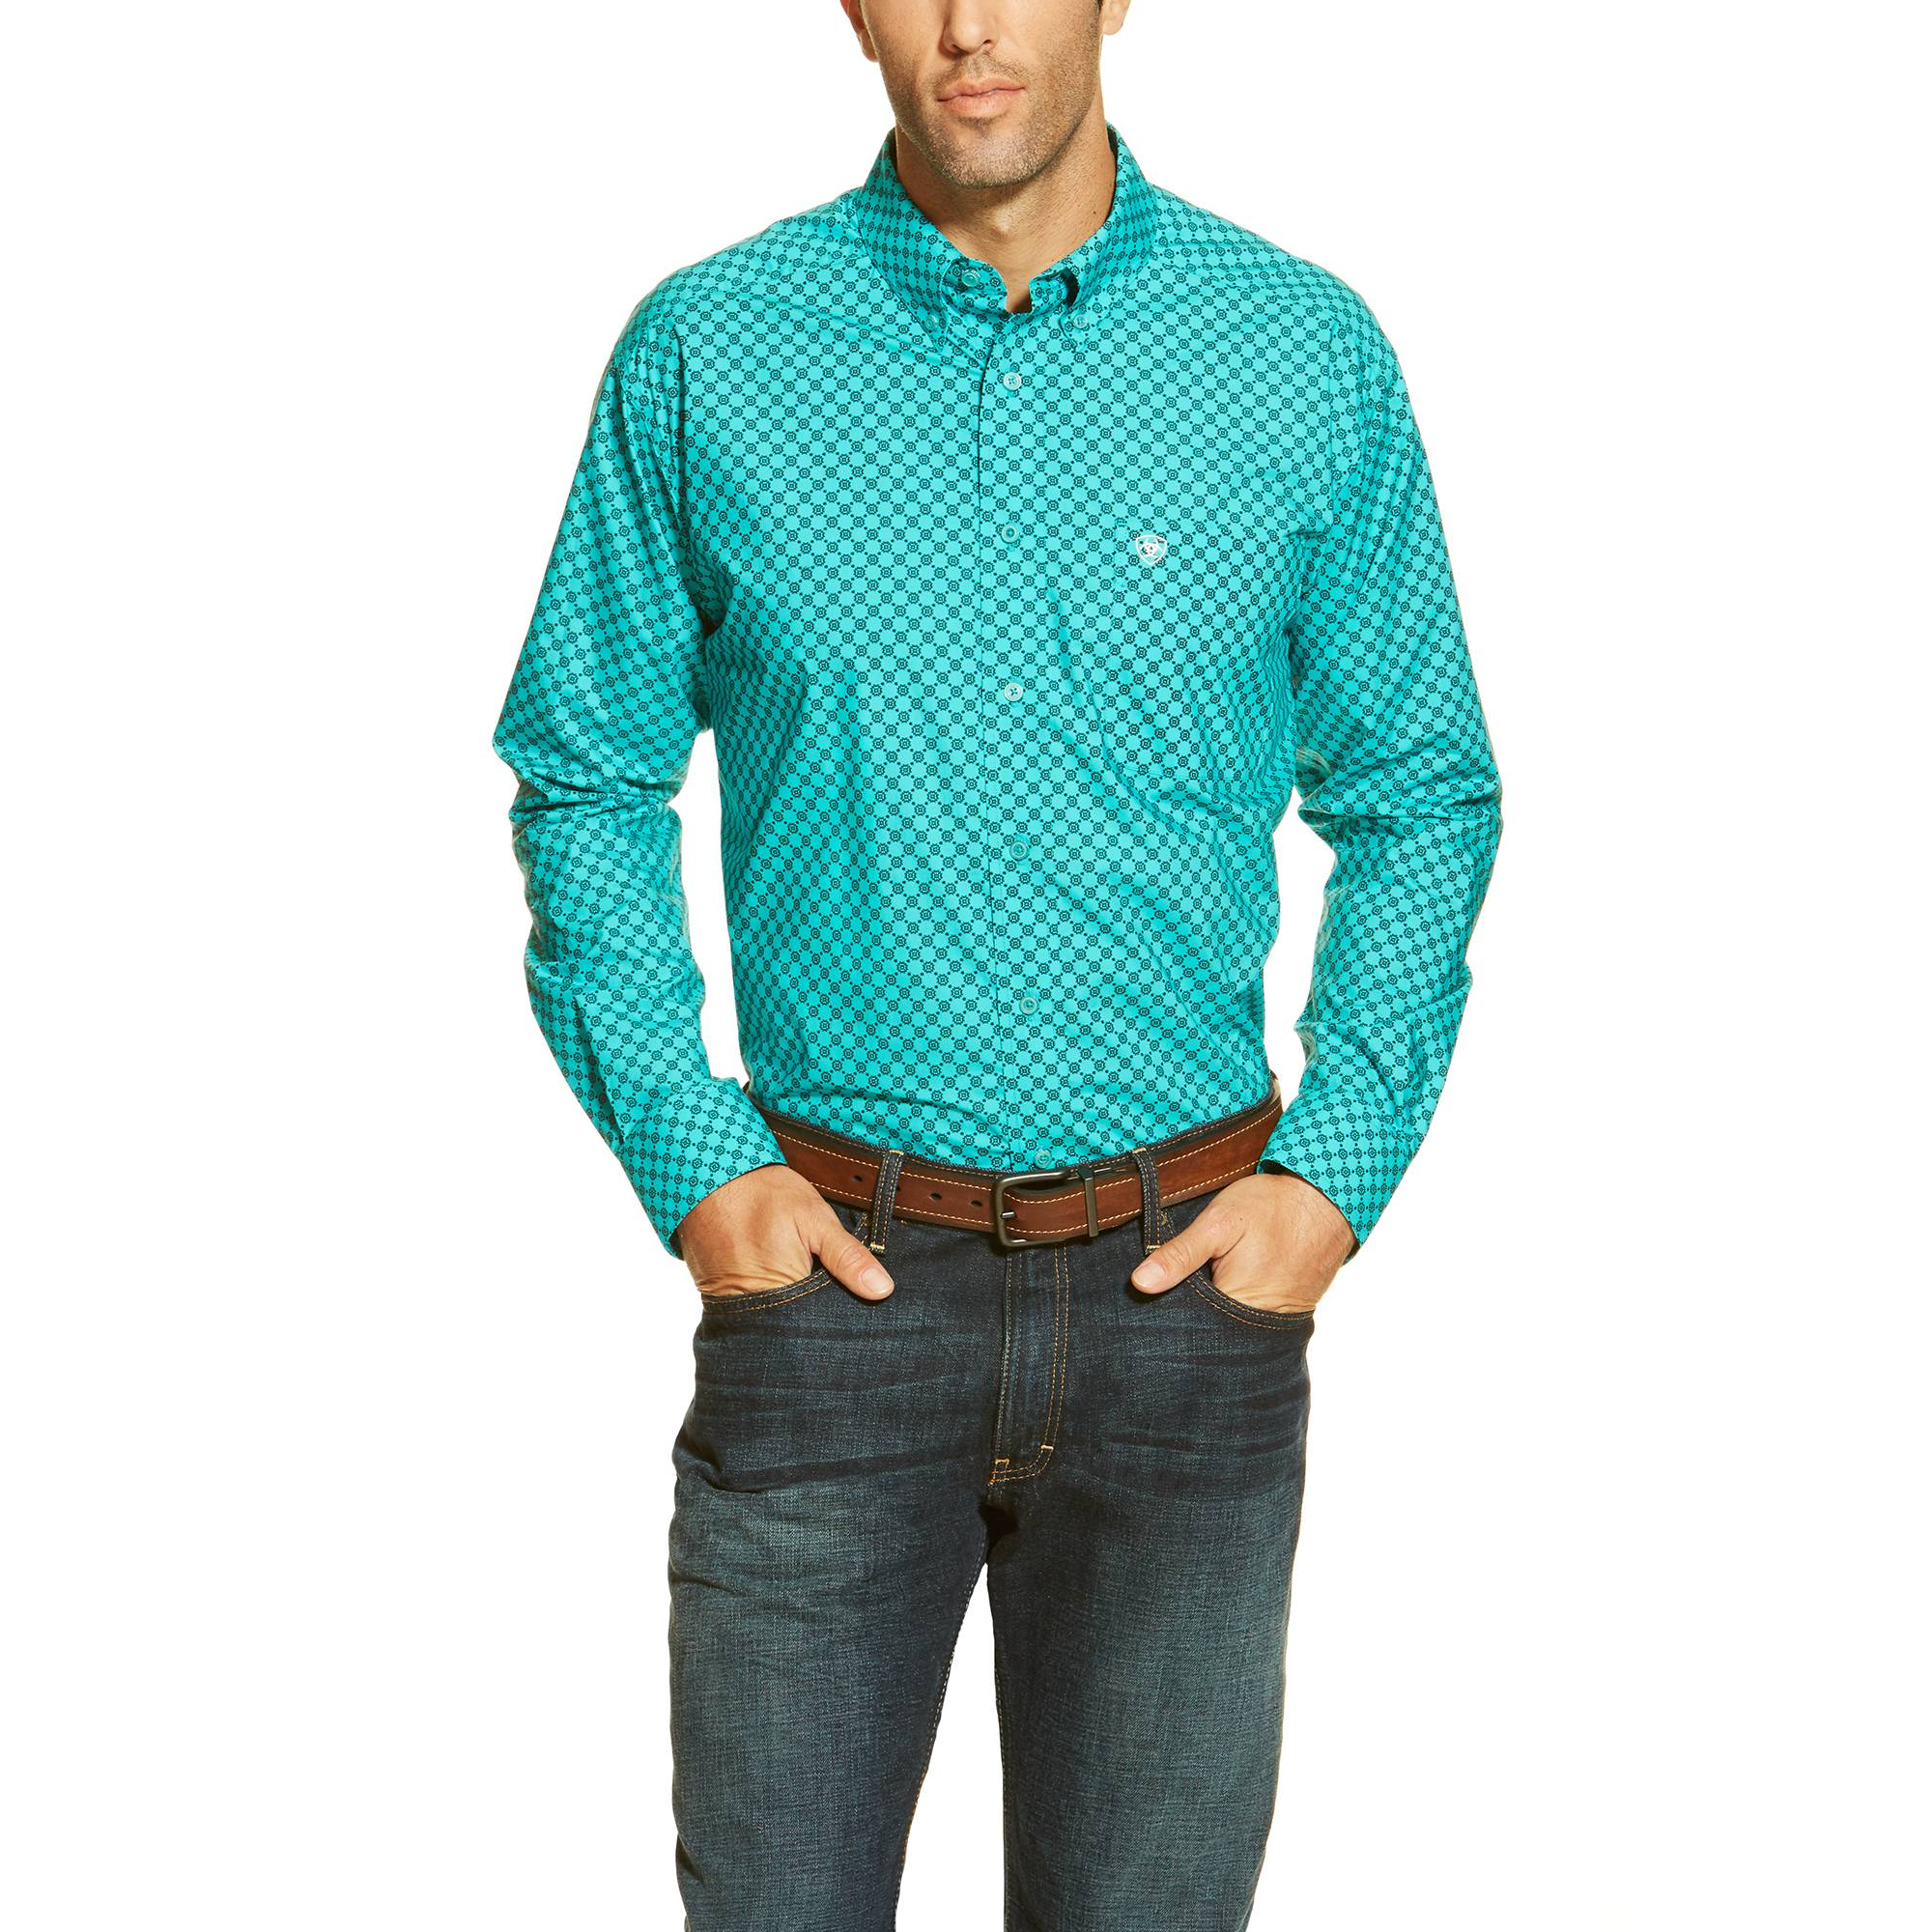 Ariat Men's Donnelly Print Shirt - Liquid Turquoise